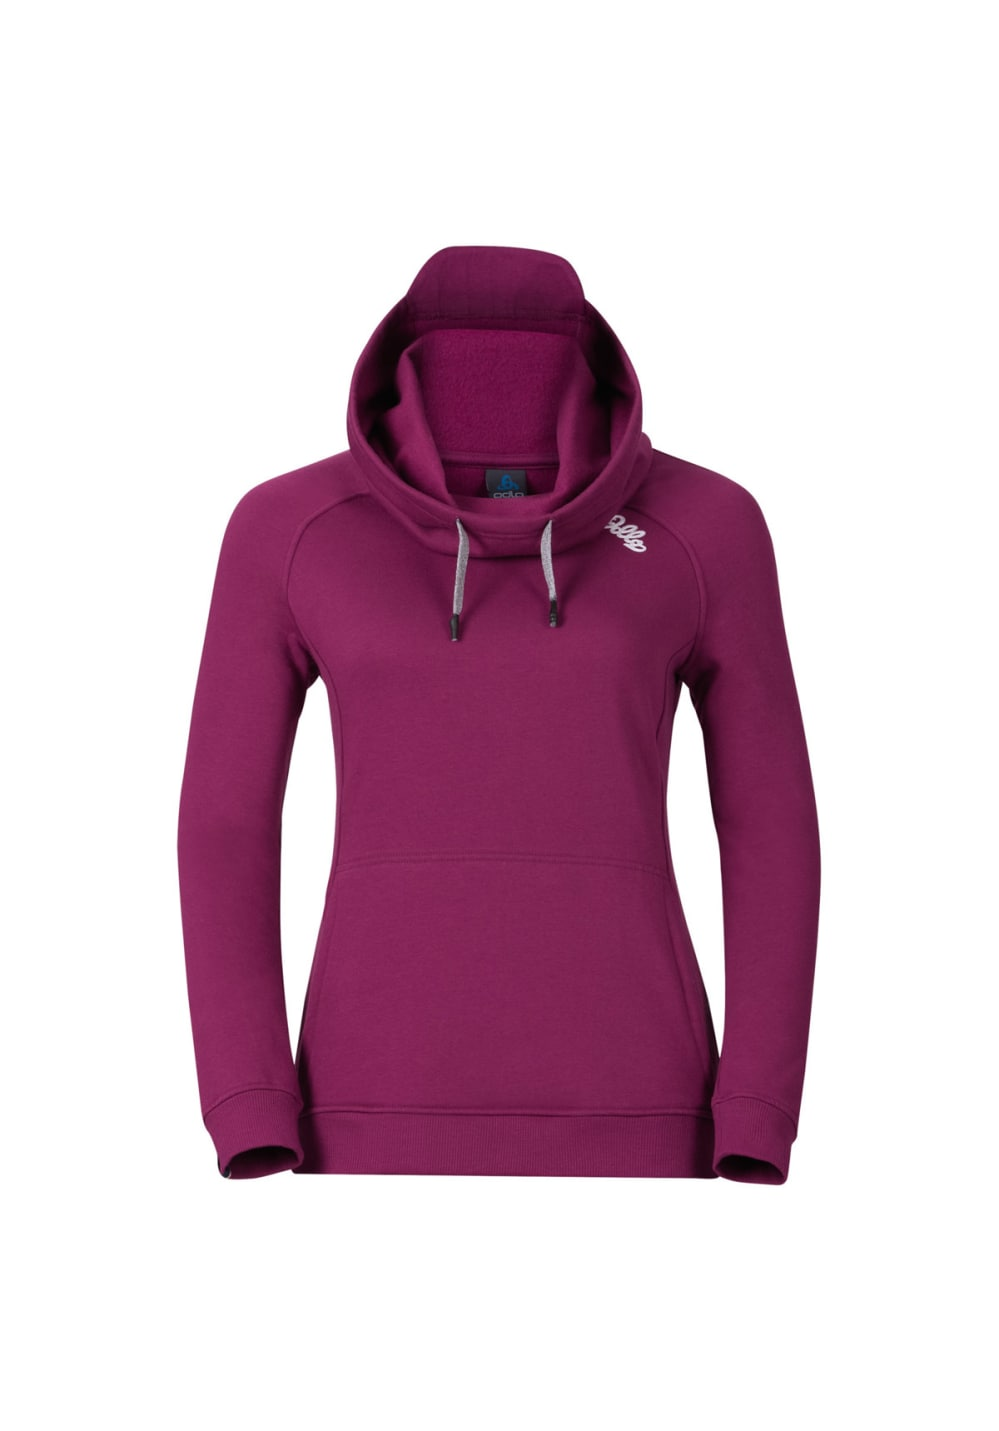 Odlo Hoody Midlayer Spot-On Cowl - Sweatshirts & Hoodies für Damen - Lila, Gr.